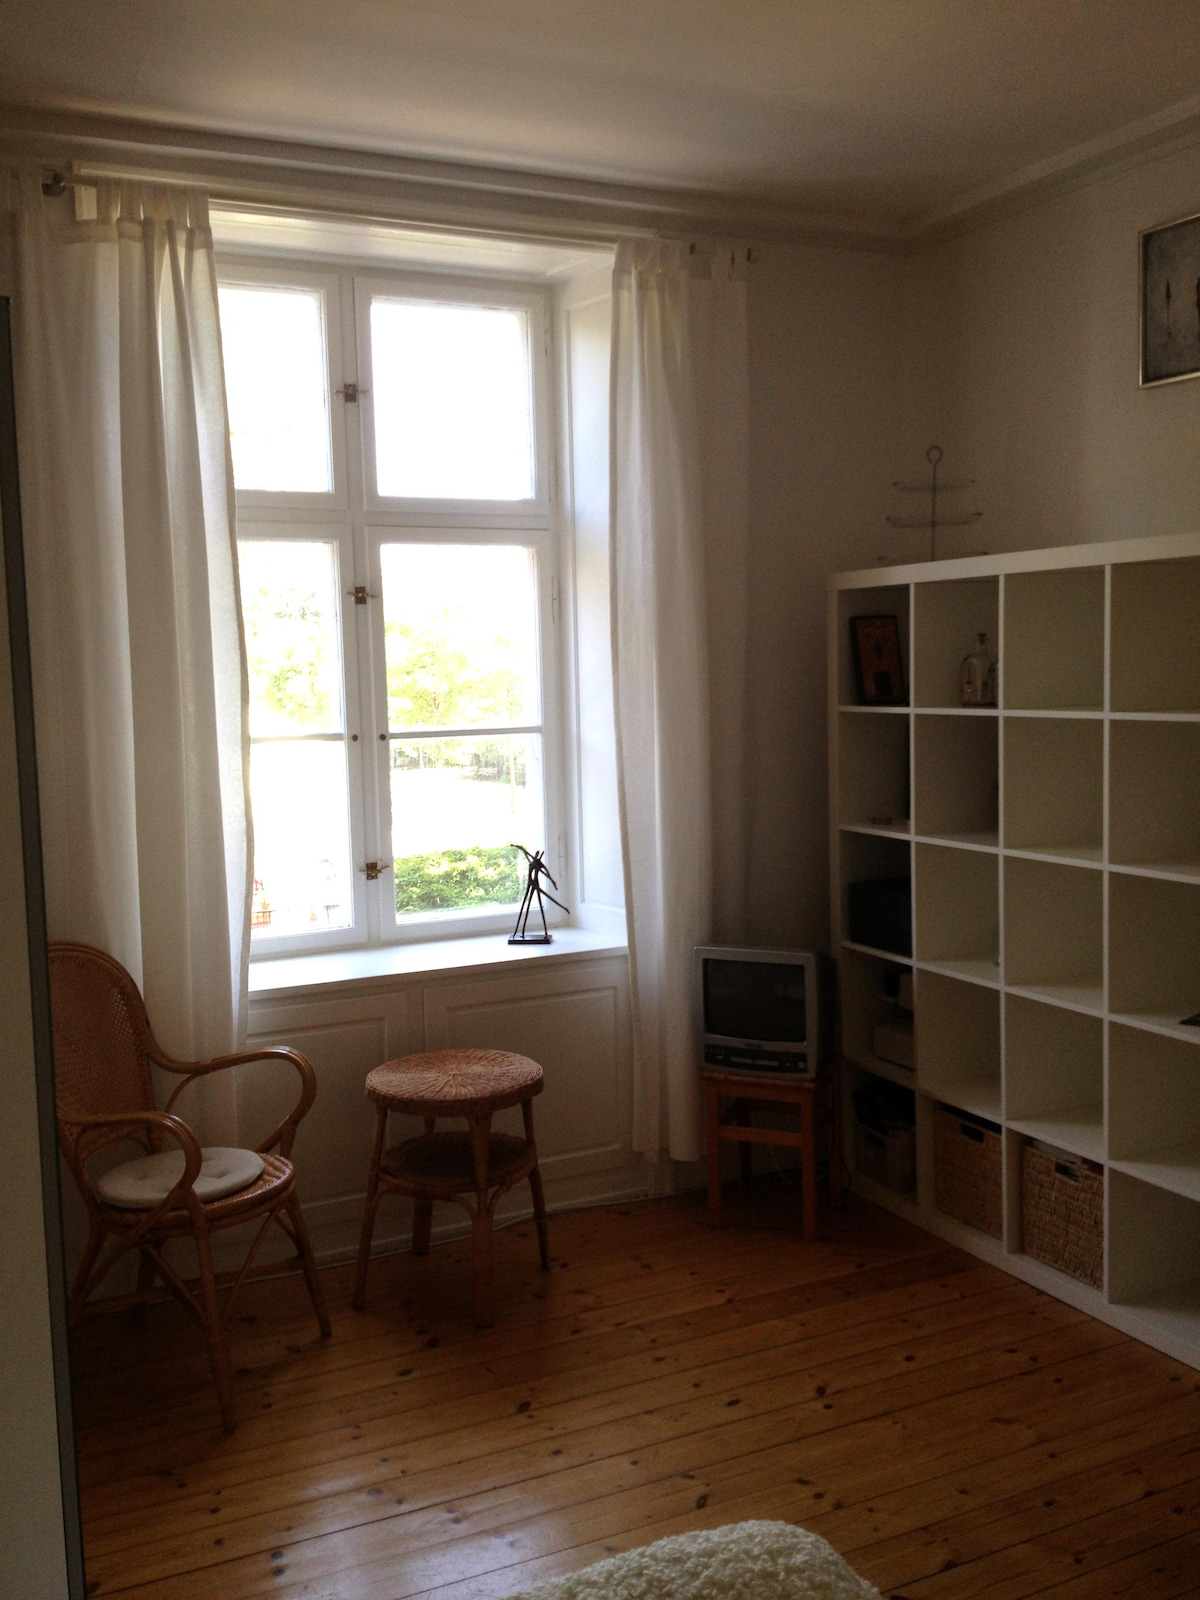 Great location in lively Vesterbro